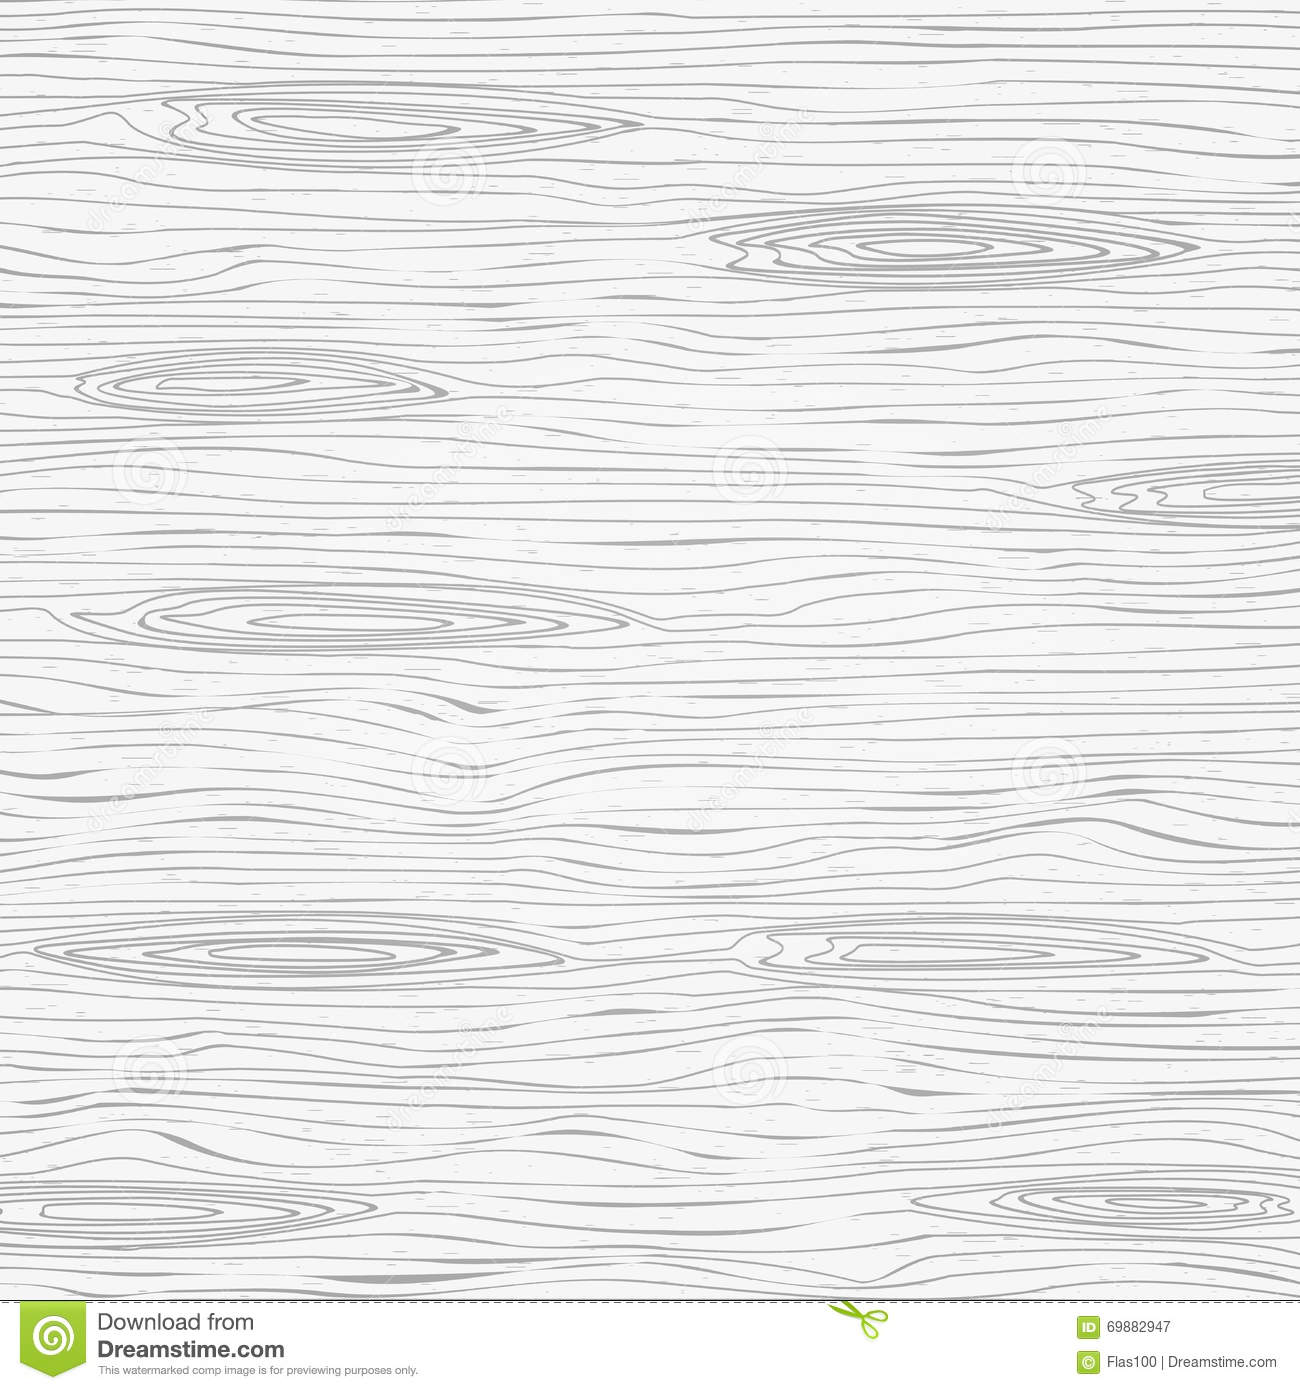 Light Gray And White Wooden Wall Table Floor Surface